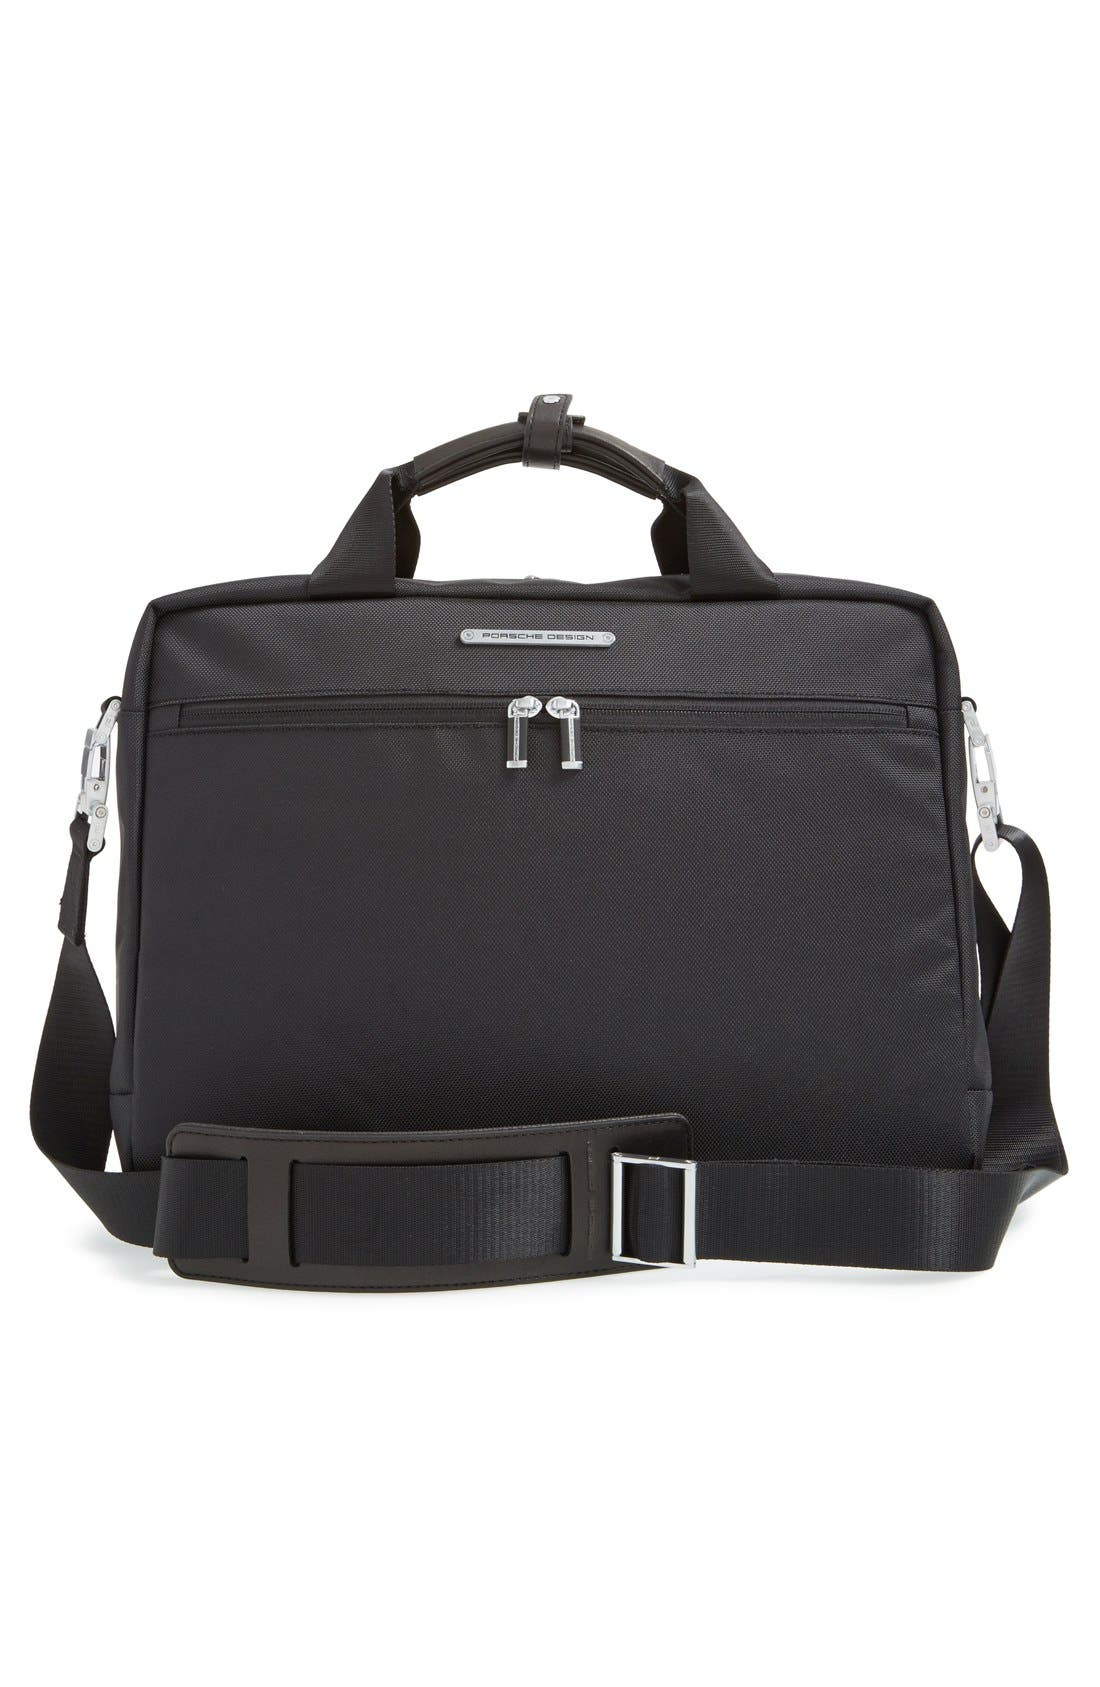 Roadster 3.0 Briefcase,                             Alternate thumbnail 3, color,                             001